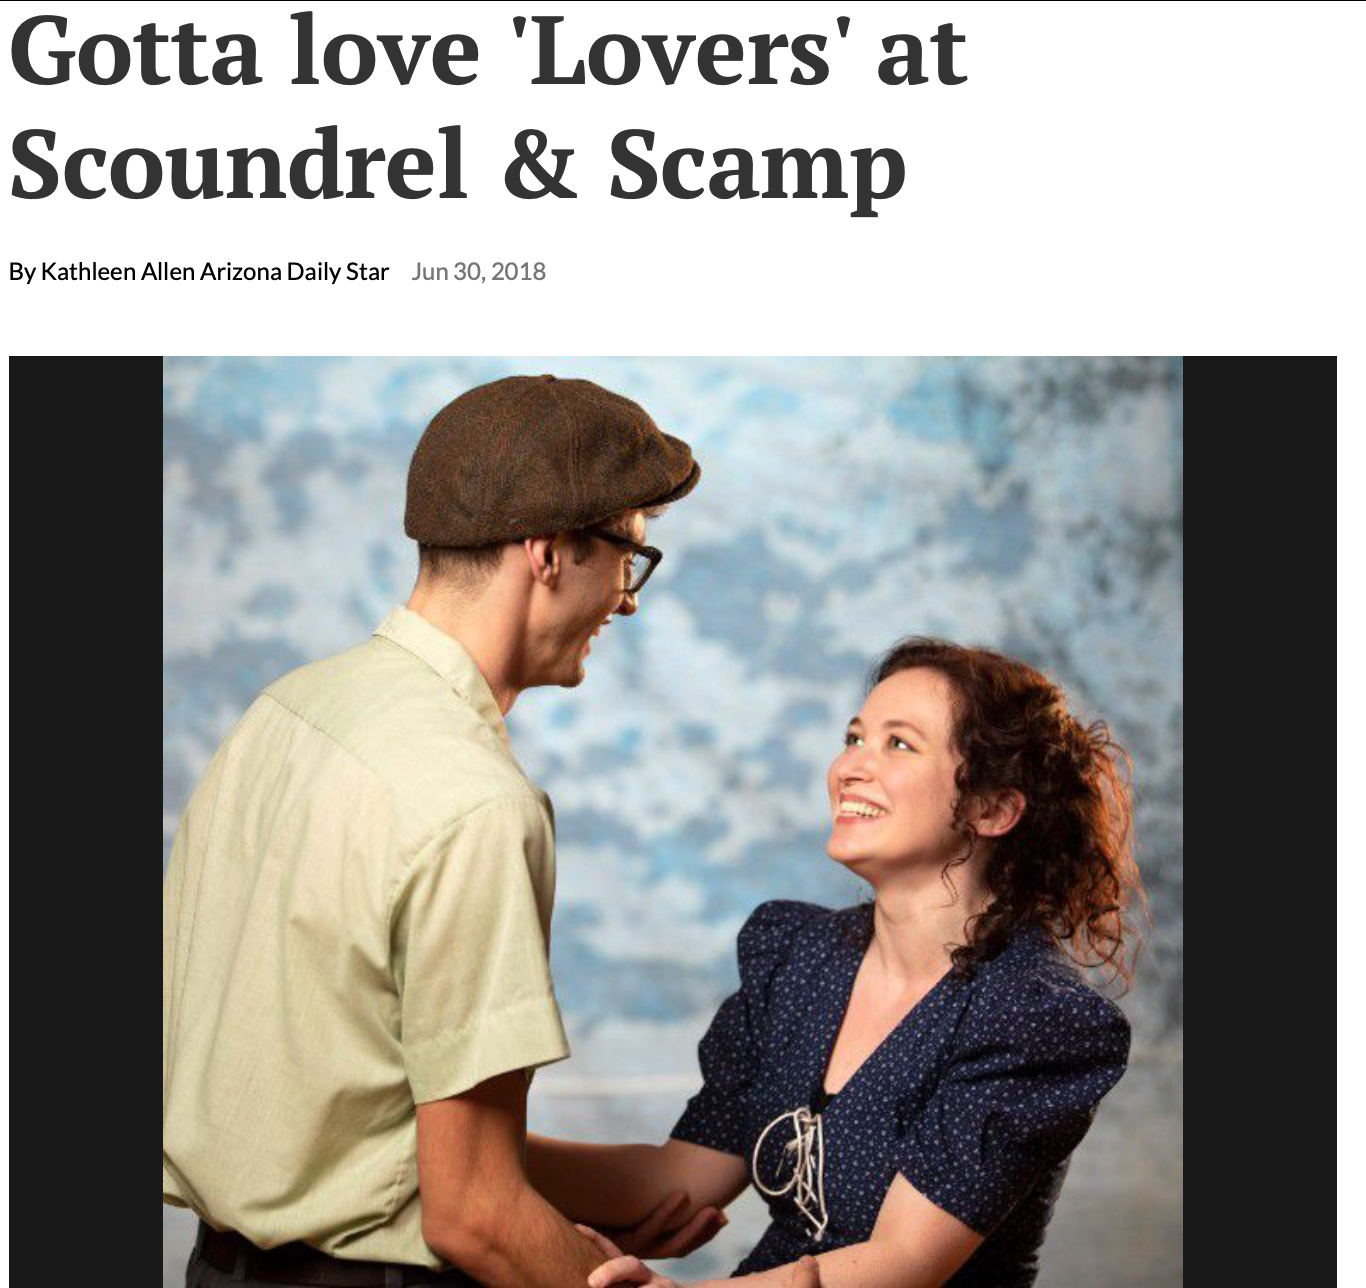 Gotta Love 'Lovers' at Scoundrel & Scamp ,   Arizona Daily Star